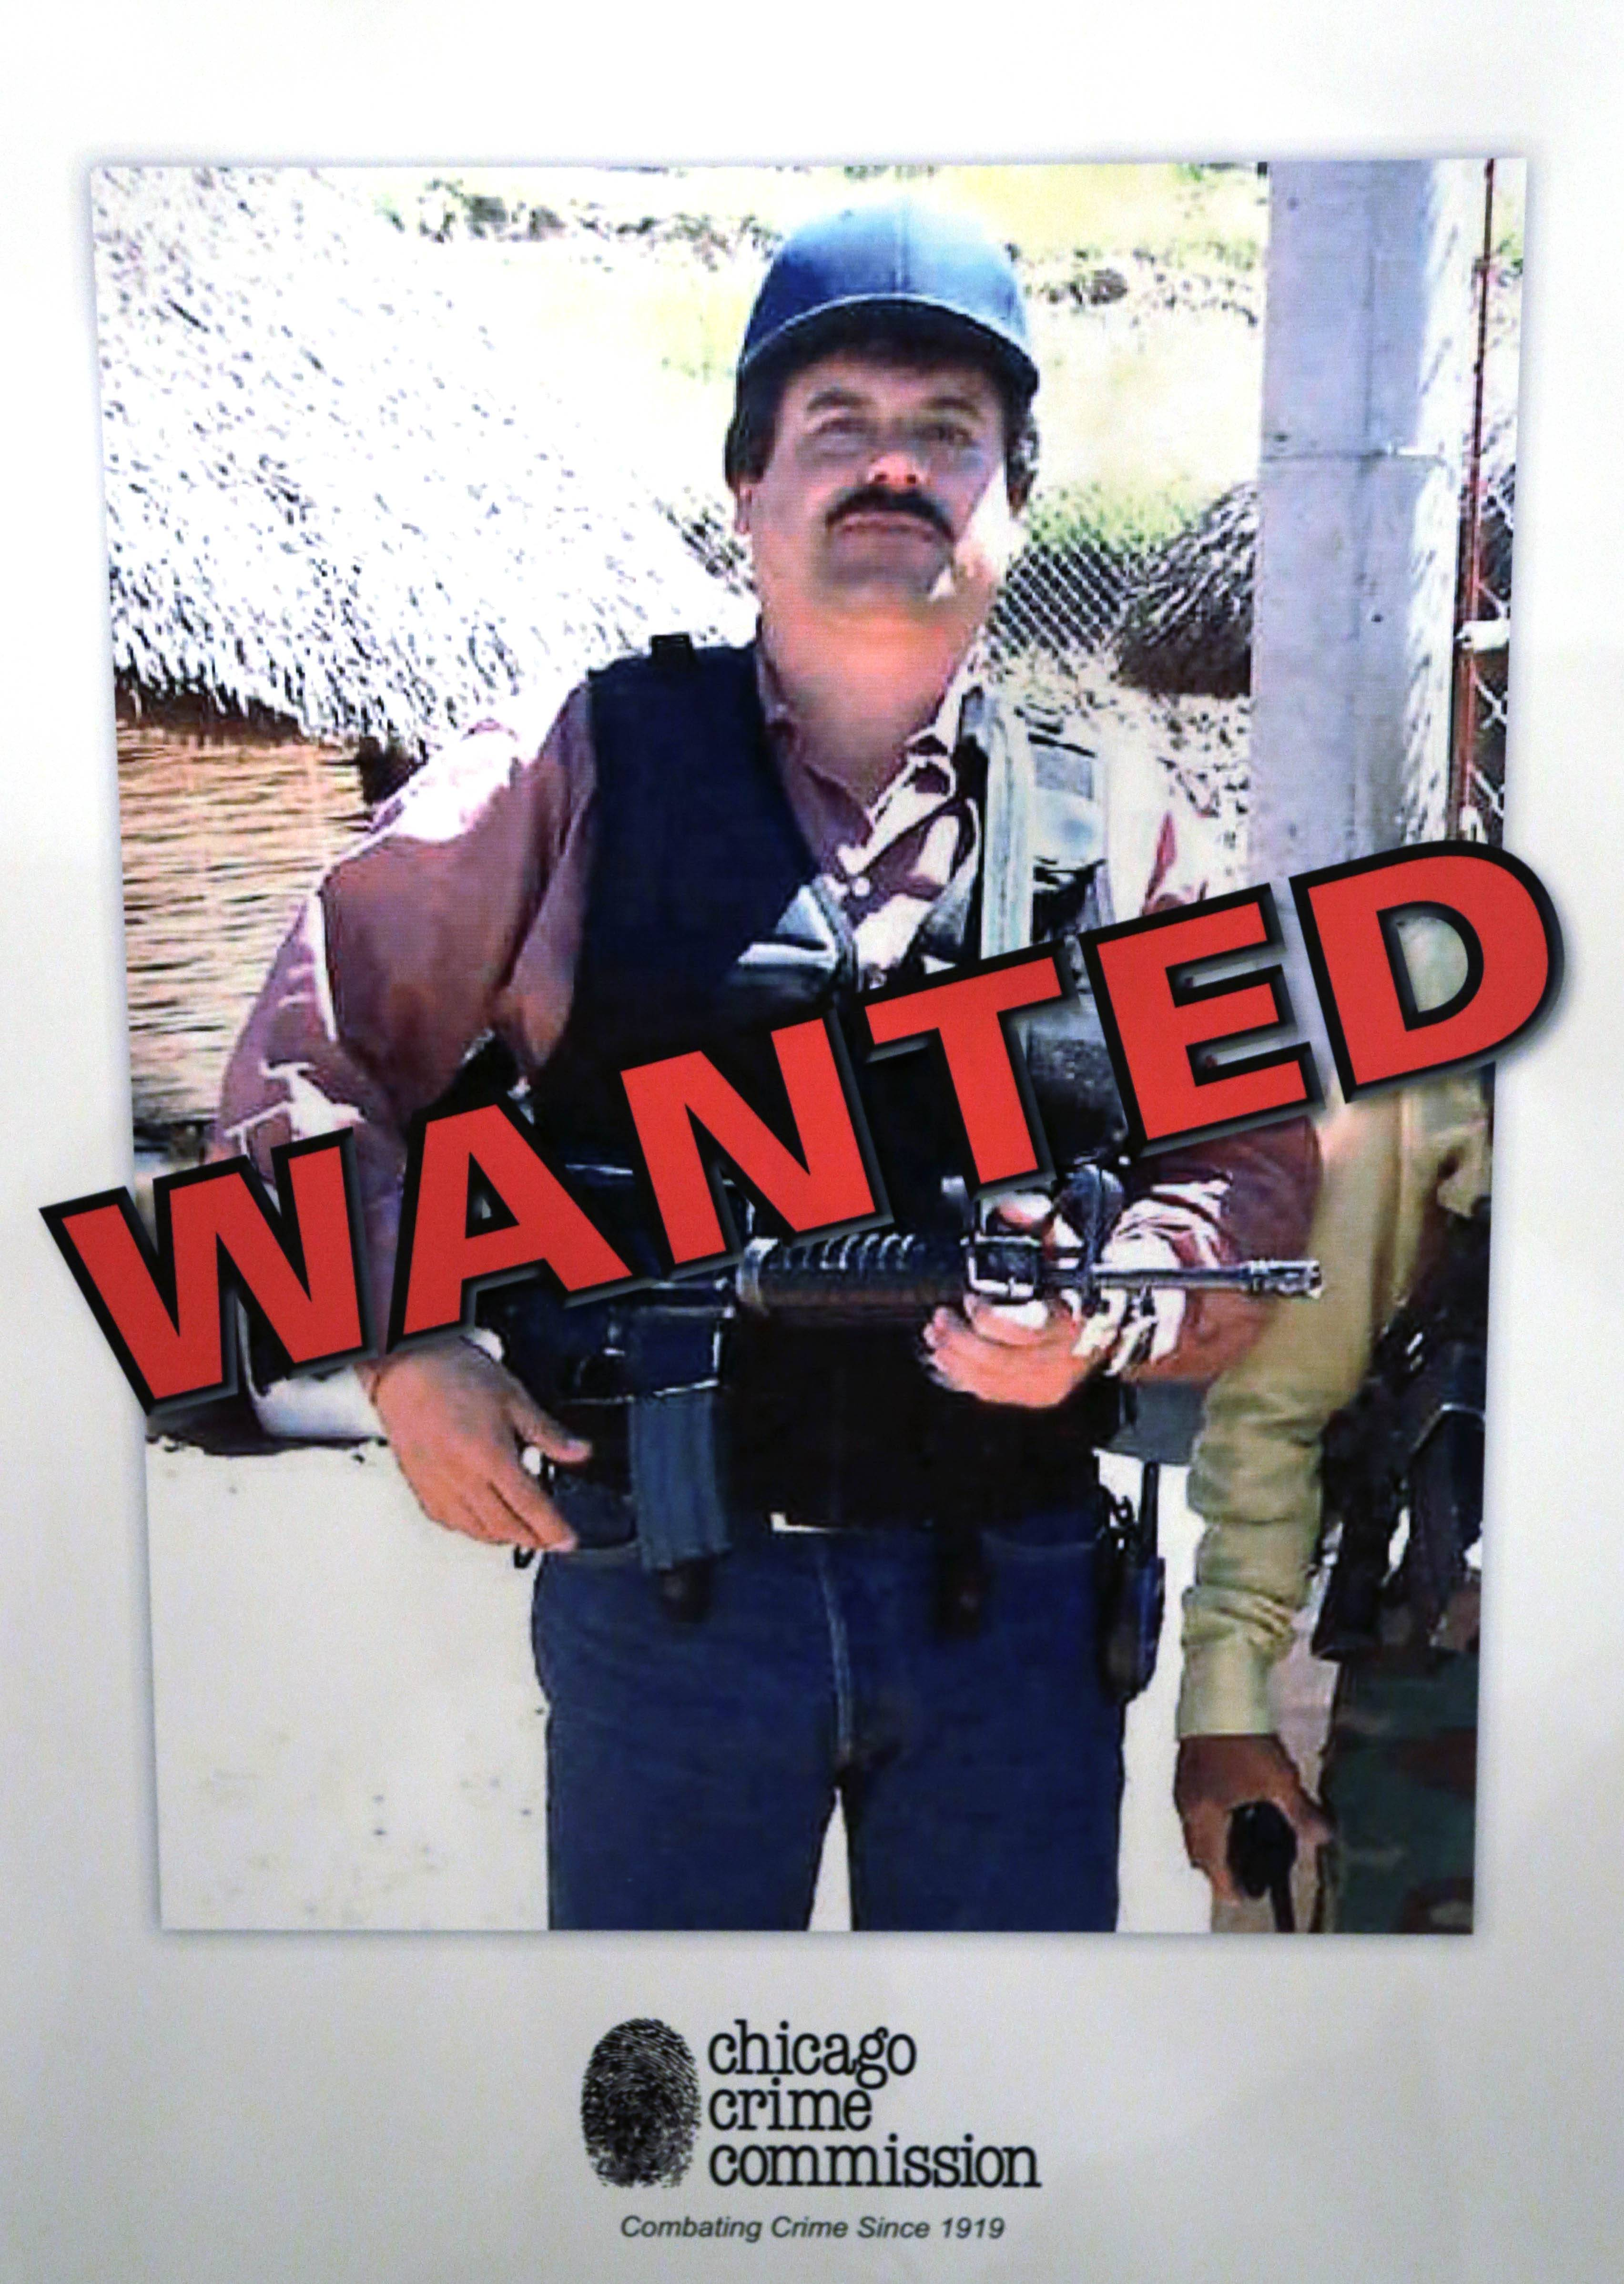 "This Feb. 14, 2013 image of a poster displayed at a Chicago Crime Commission news conference shows Joaquin ""El Chapo"" Guzman, a drug kingpin in Mexico, who was deemed Chicago's Public Enemy No. 1. It was the first time since prohibition, when the label was created for Al Capone, that it was used to describe a criminal. Guzman, the one they called ""shorty"" because of his 5'6"" frame, a man who grew up poor and had no formal education, would rise from a small-time Mexican marijuana producer to lead the world's most powerful drug cartel."